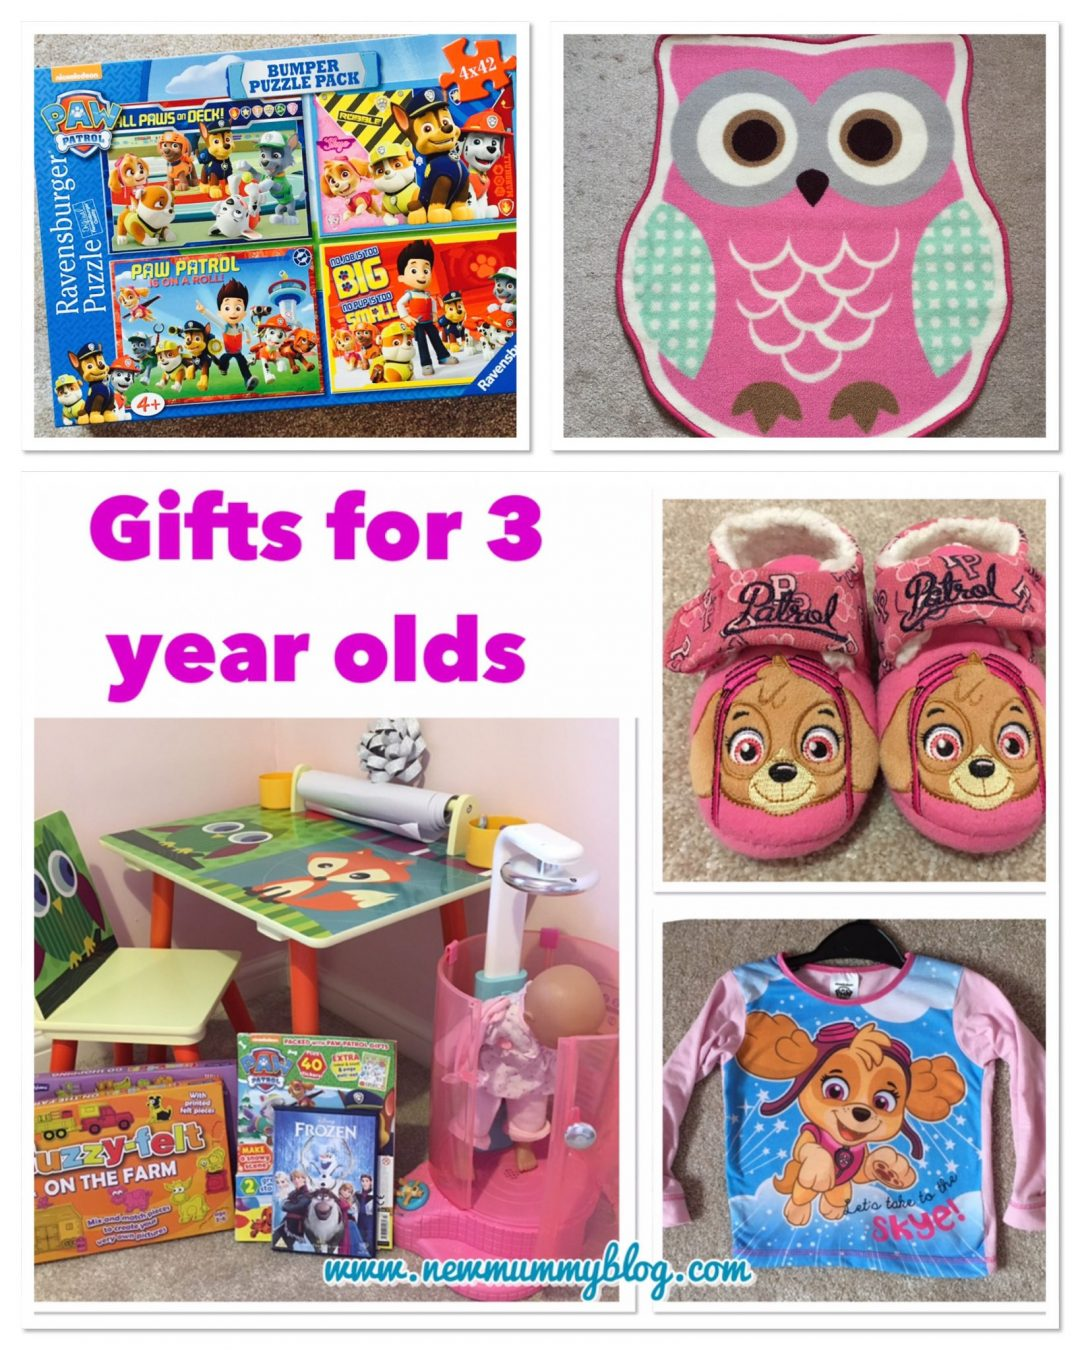 Gifts for a 3 year old